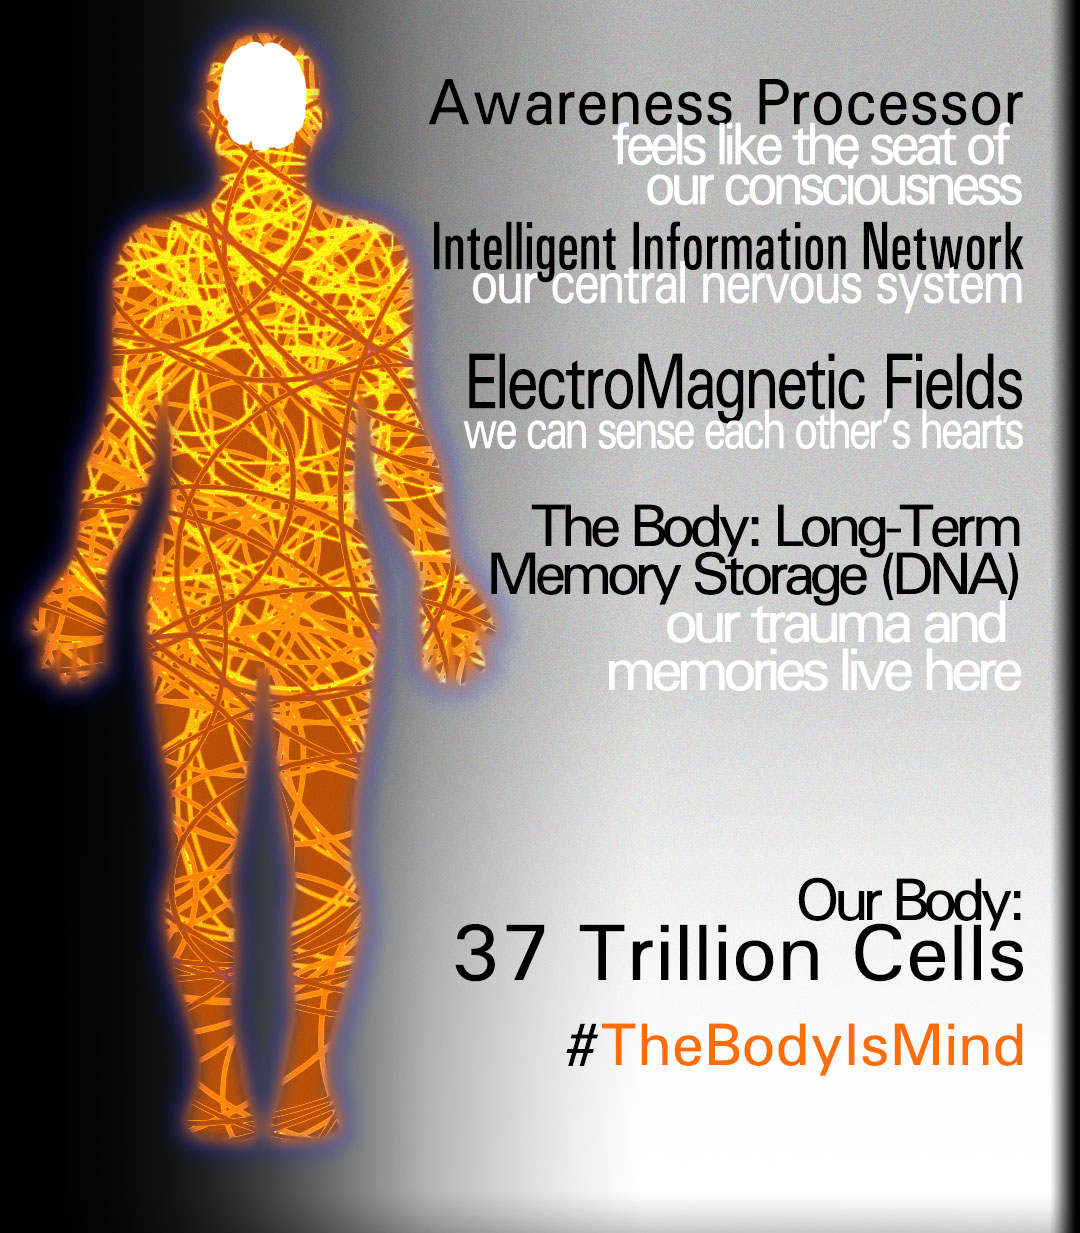 There are an average of 37 trillion cells in the human body organic intelligence system. The Body Is Mind. #thebodyismind